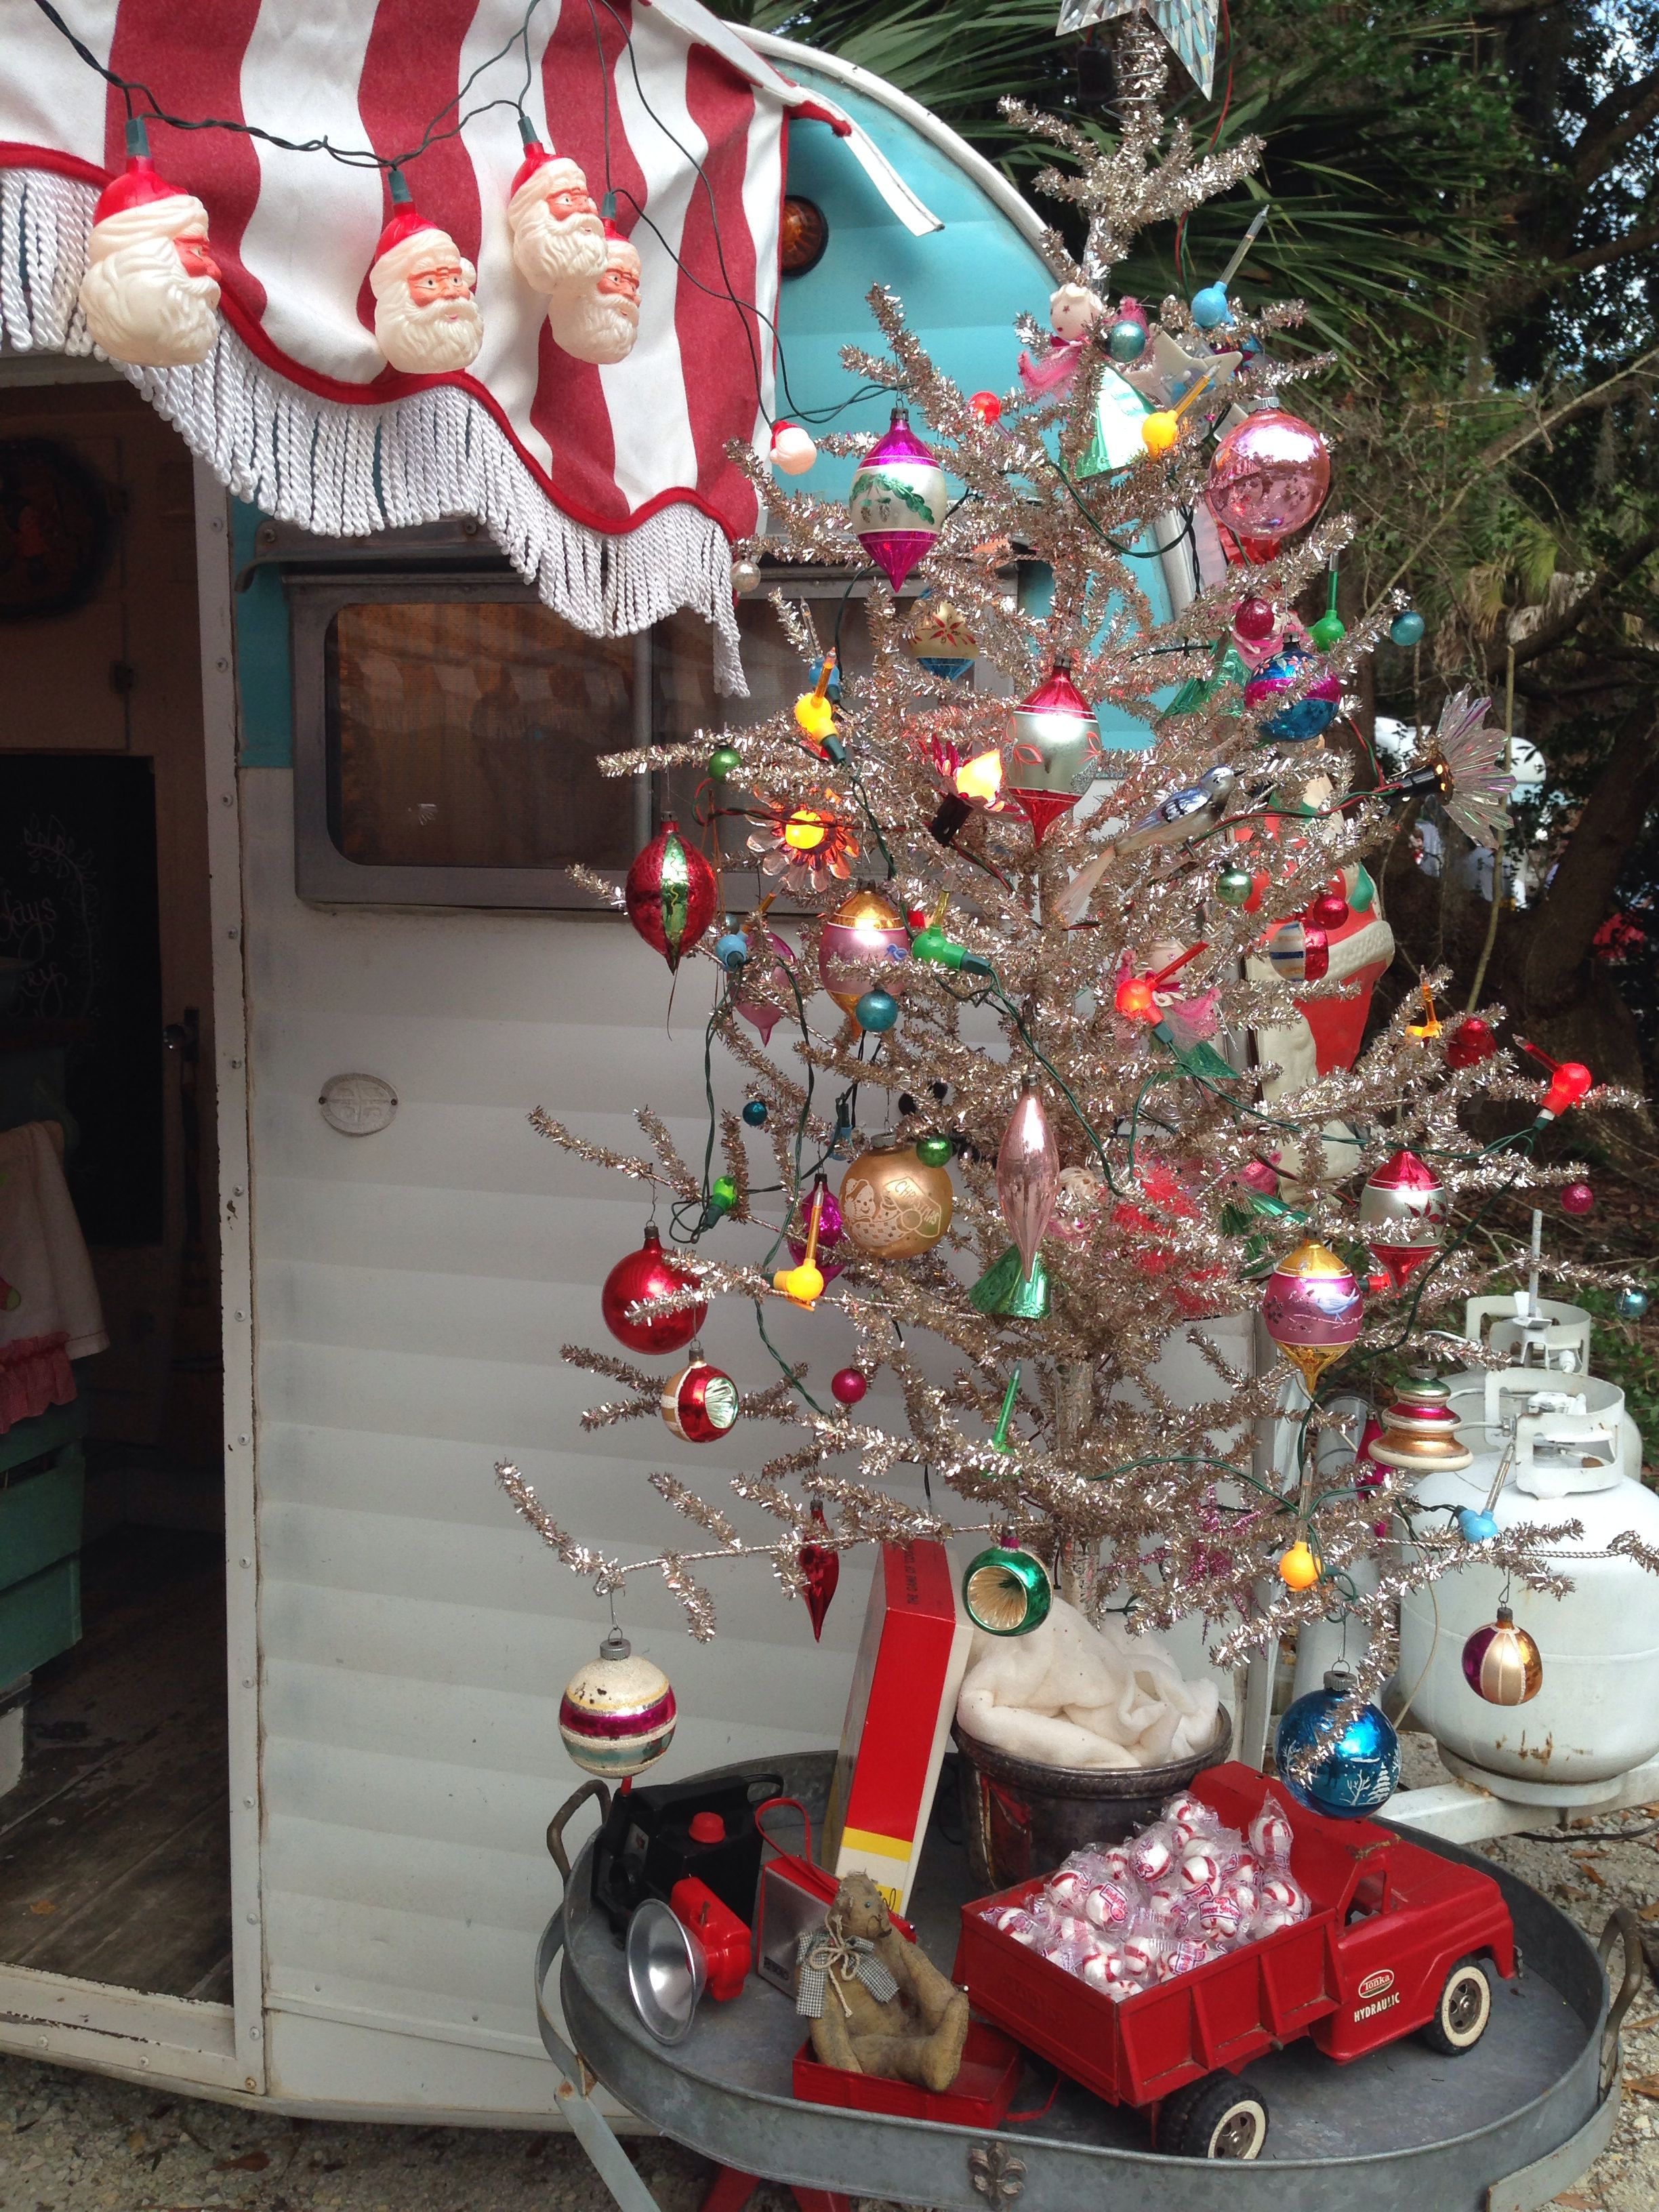 Christmas time in our vintage trailer